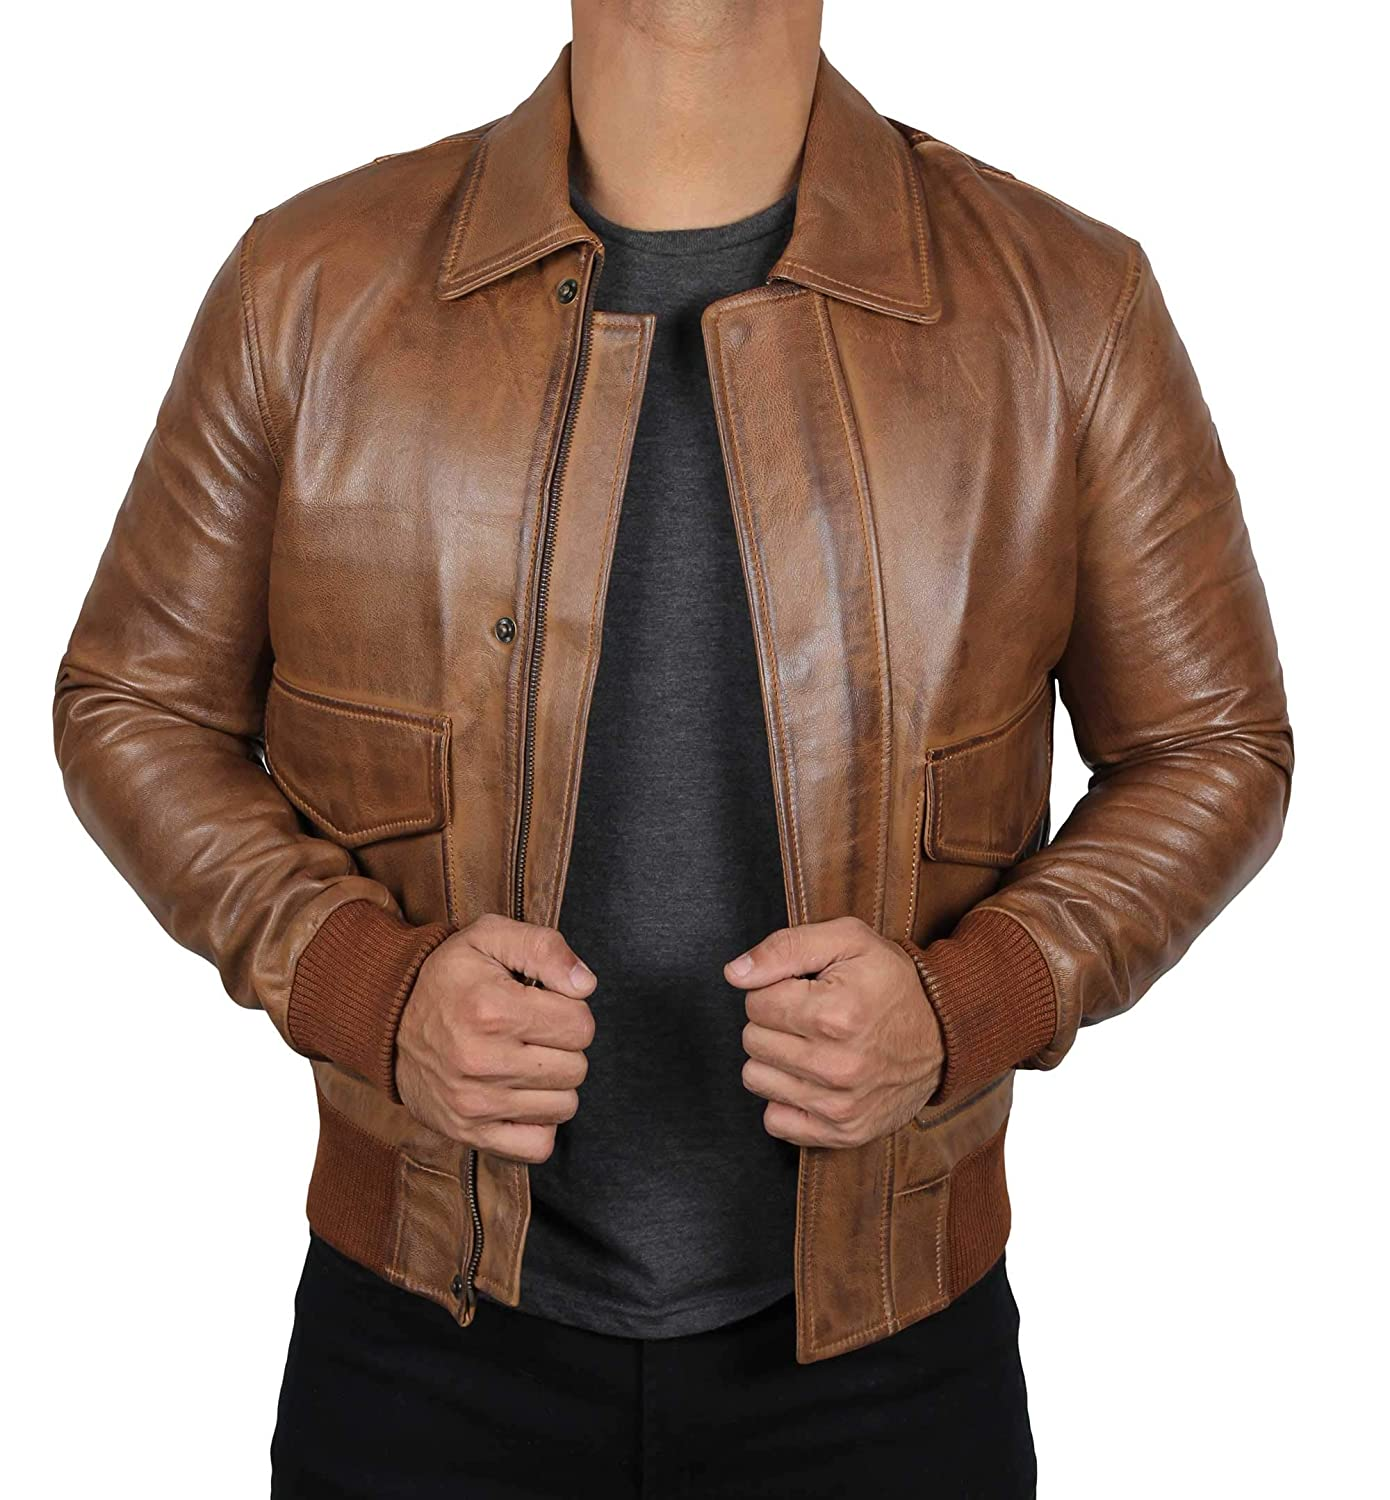 b96f76bf2 Leather Bomber Jackets for Men - Genuine Lambskin Mens Leather Jacket